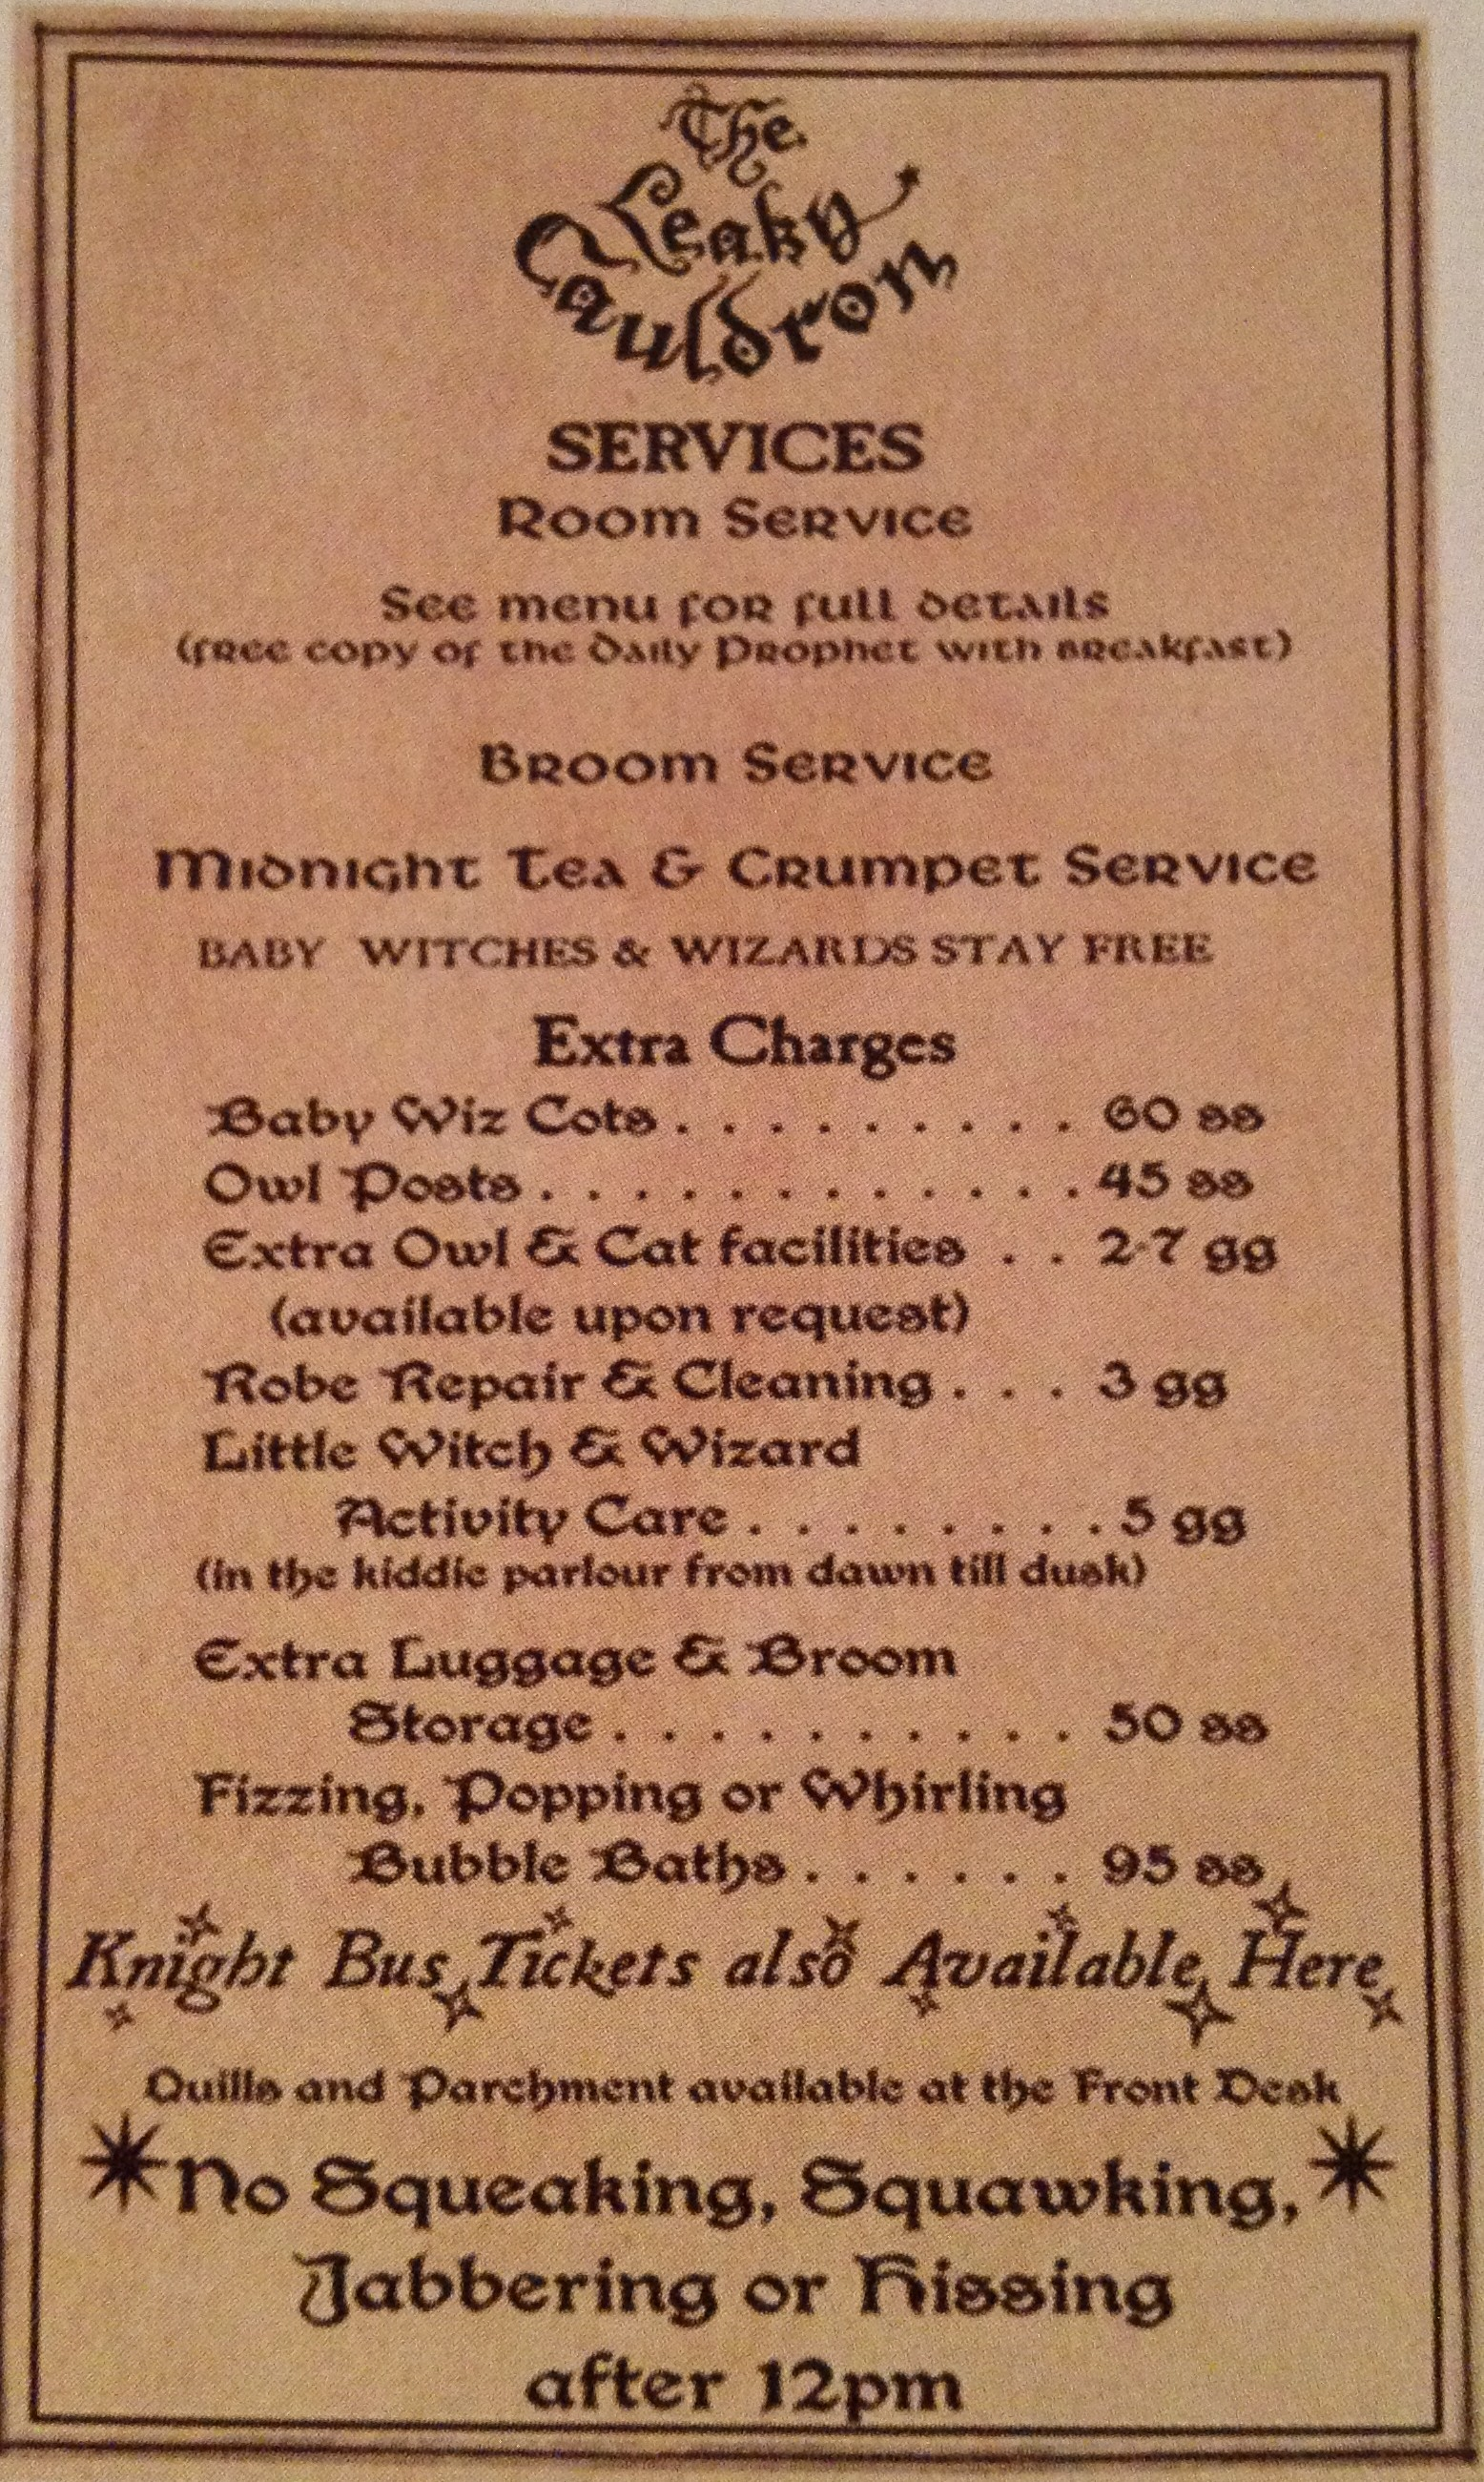 Leaky Cauldron Room Service